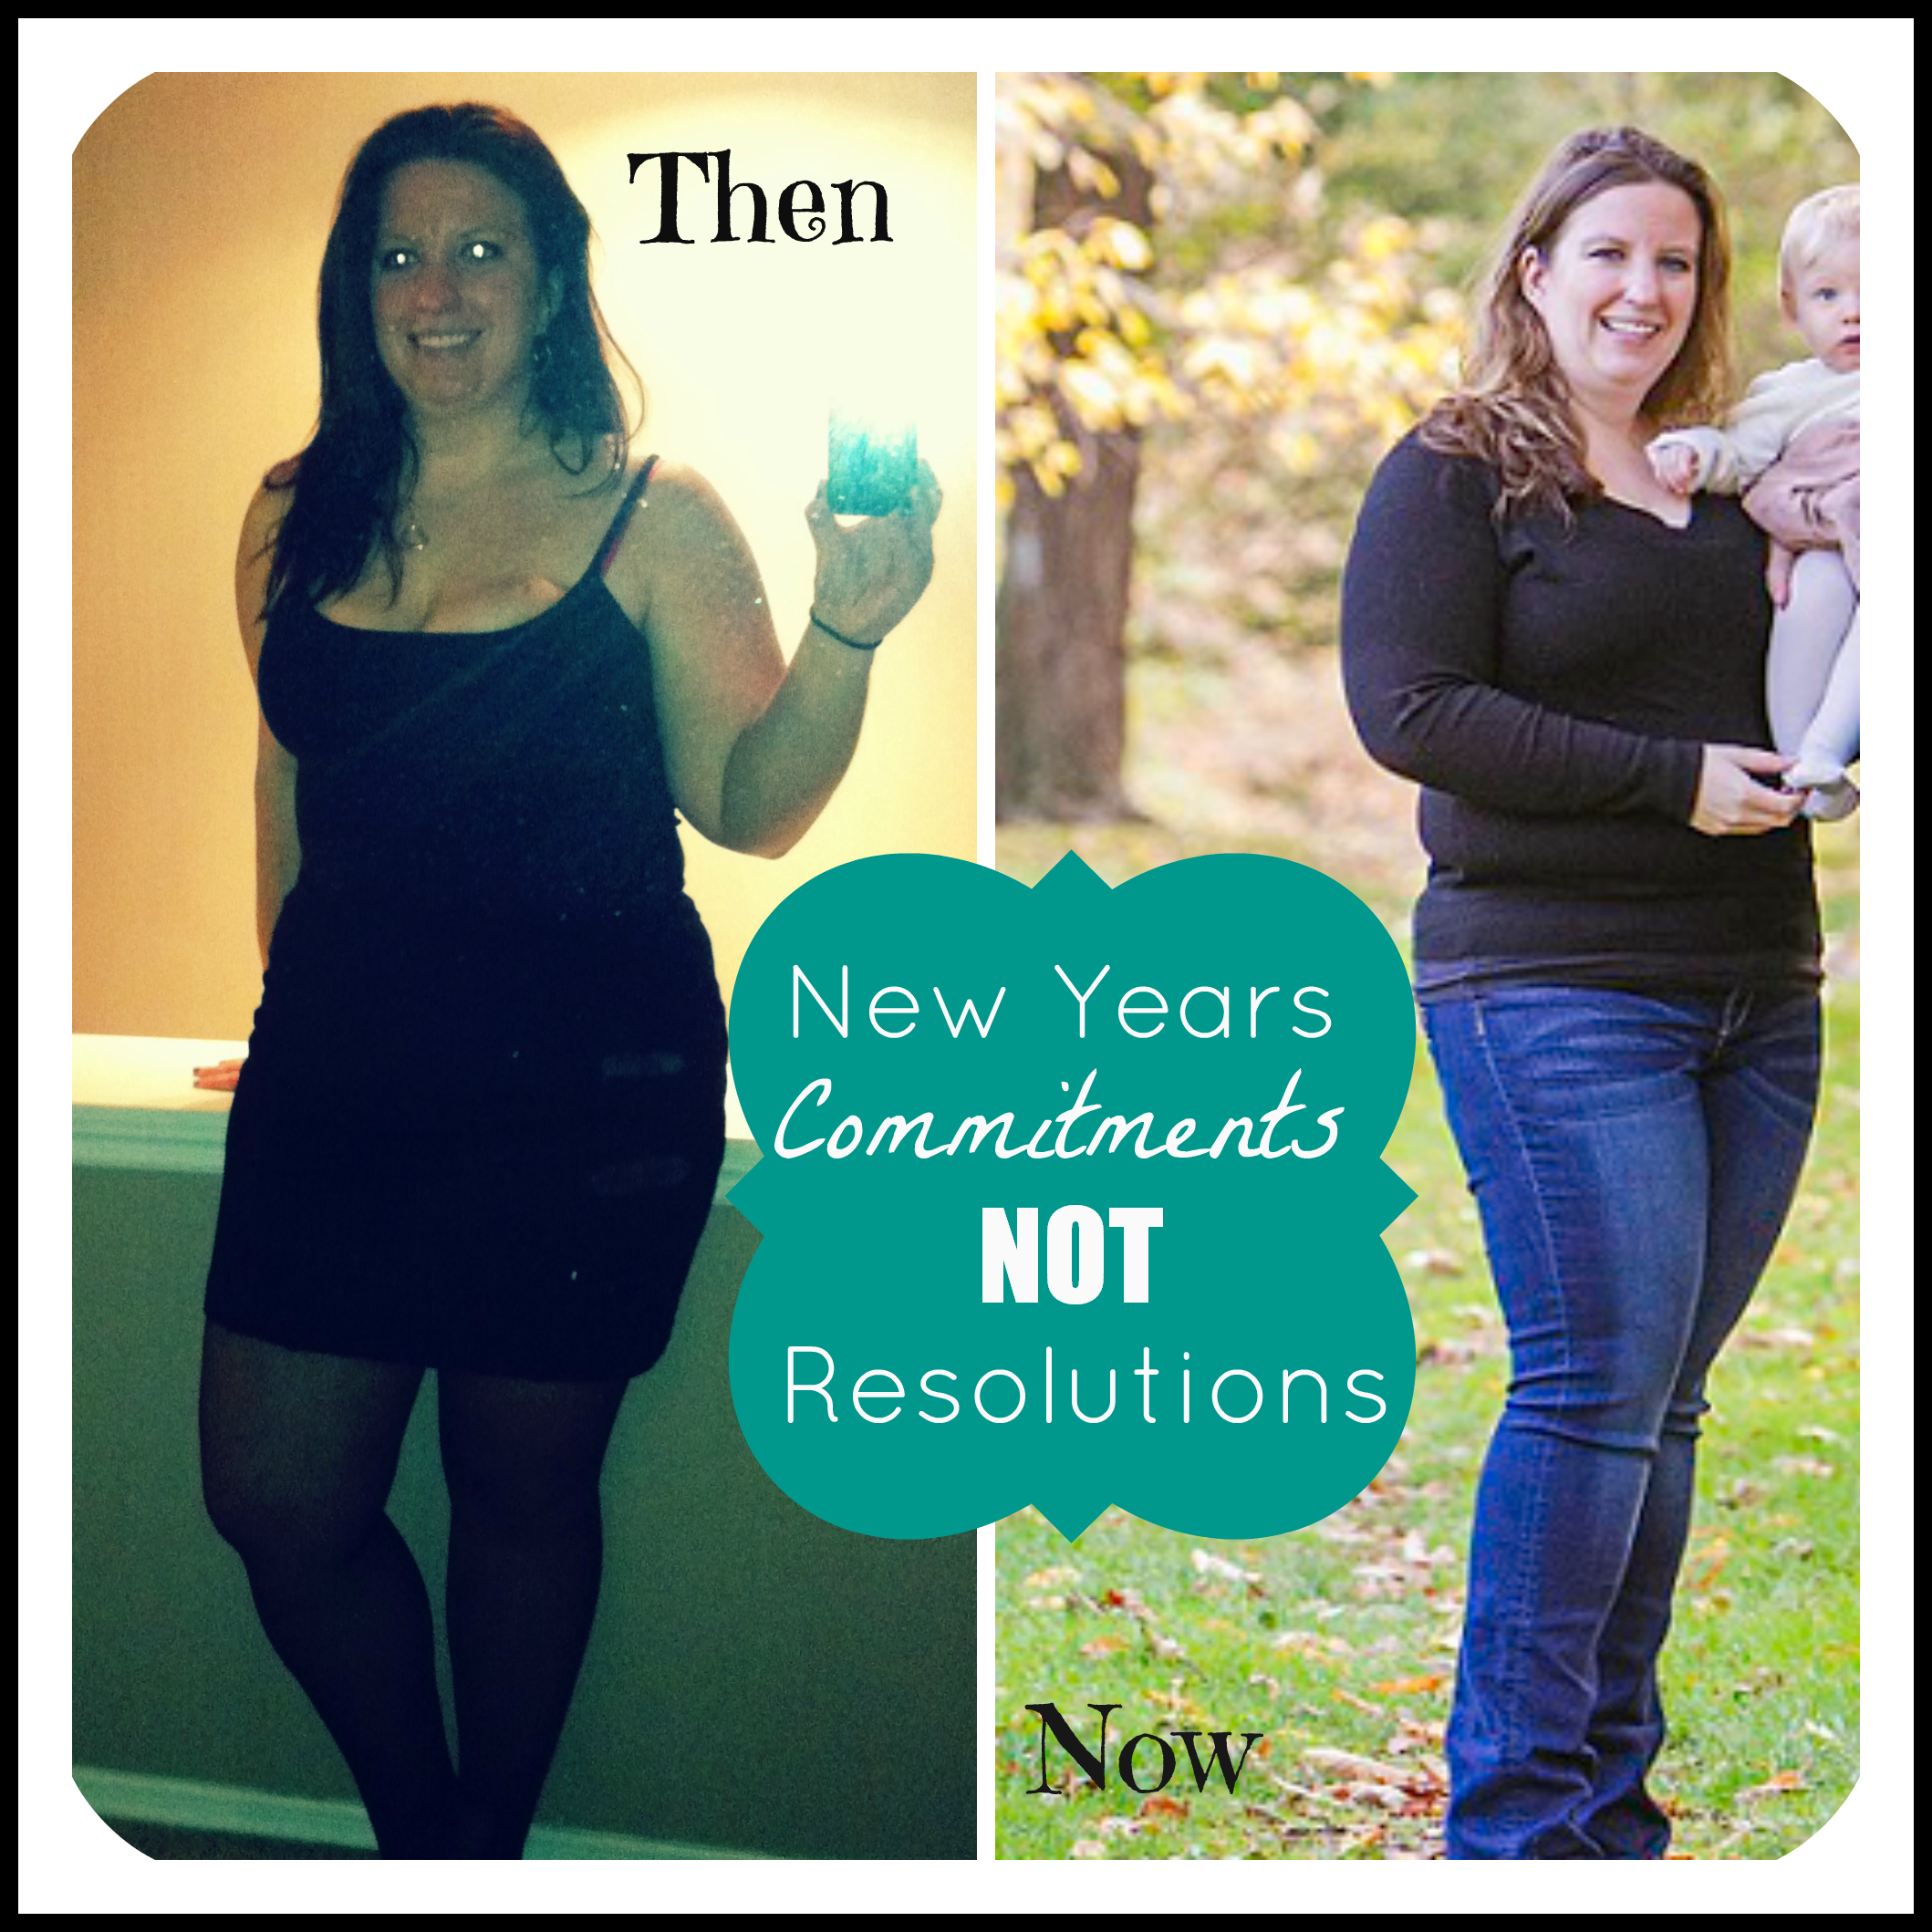 I believe in New Year's Commitments. Resolutions only last minutes, commitments last year round. This year I want to lose weight but my reasons are important. All working moms can relate to this.